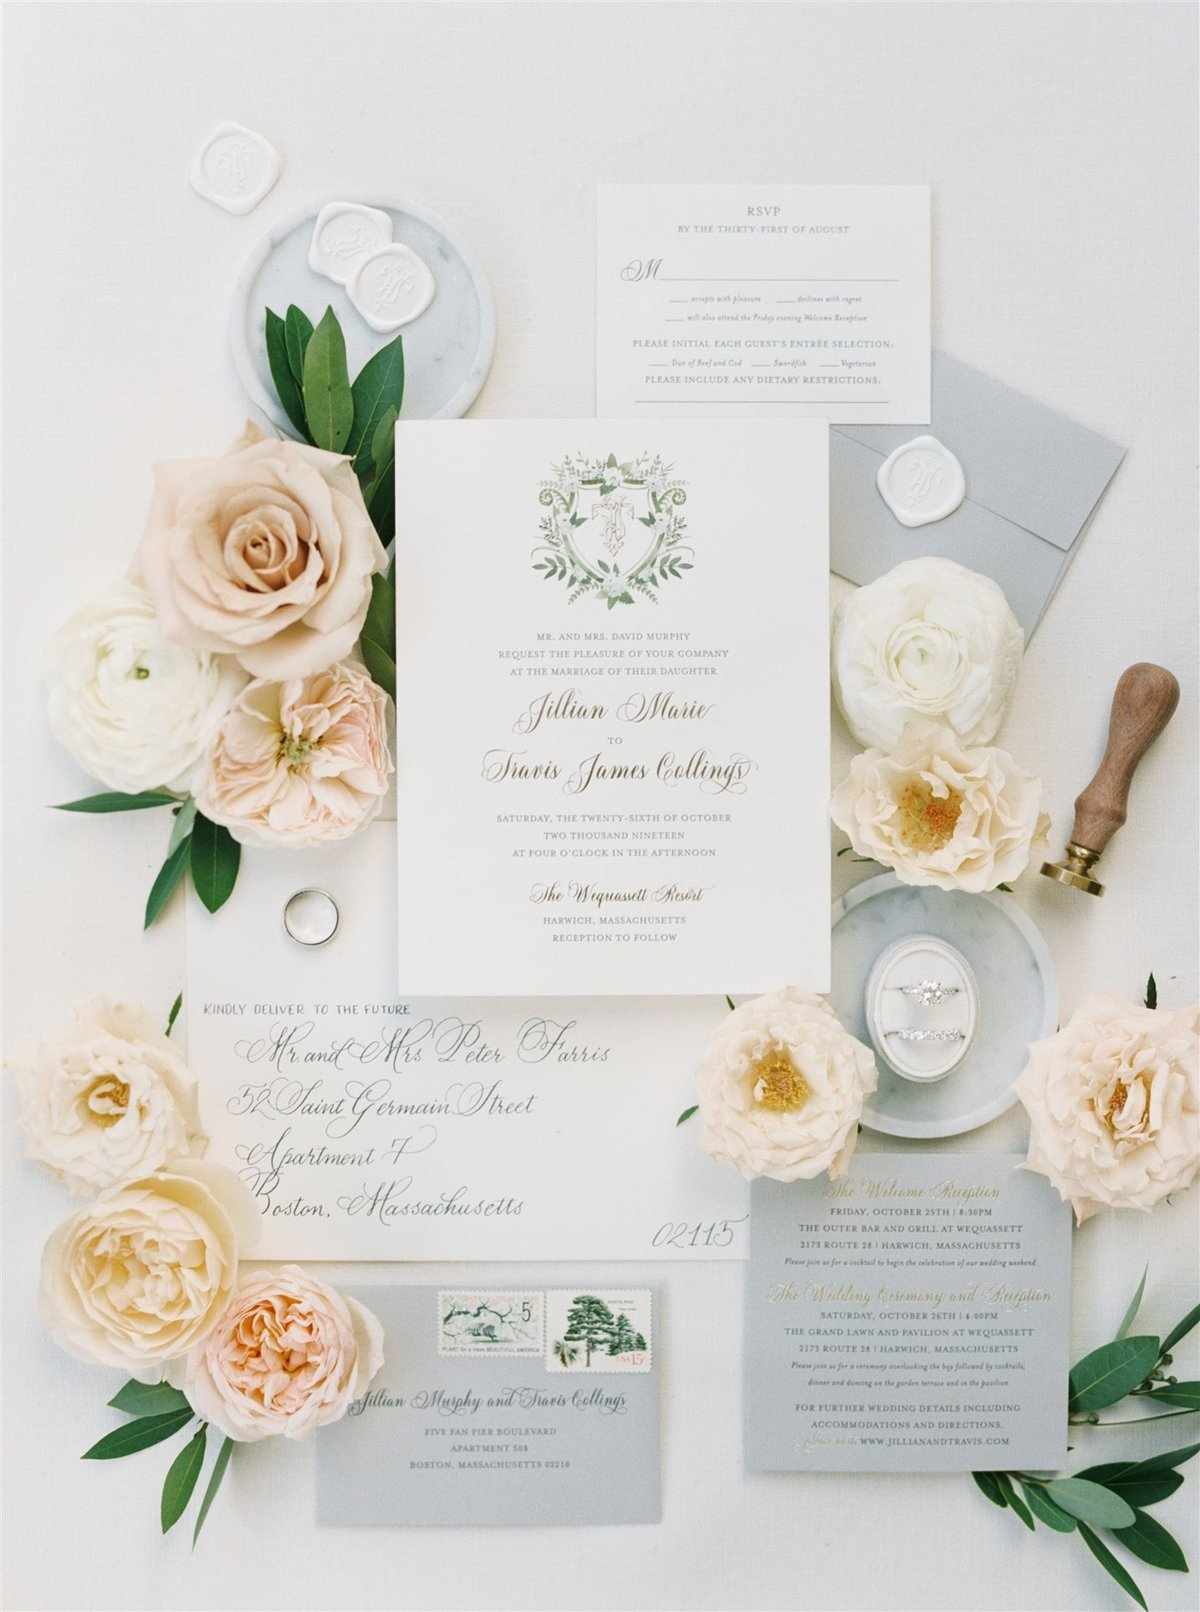 Luxe letterpress suite by Fete Collection with calligraphy, crest, monogram and wax seal by wedding planner and designer